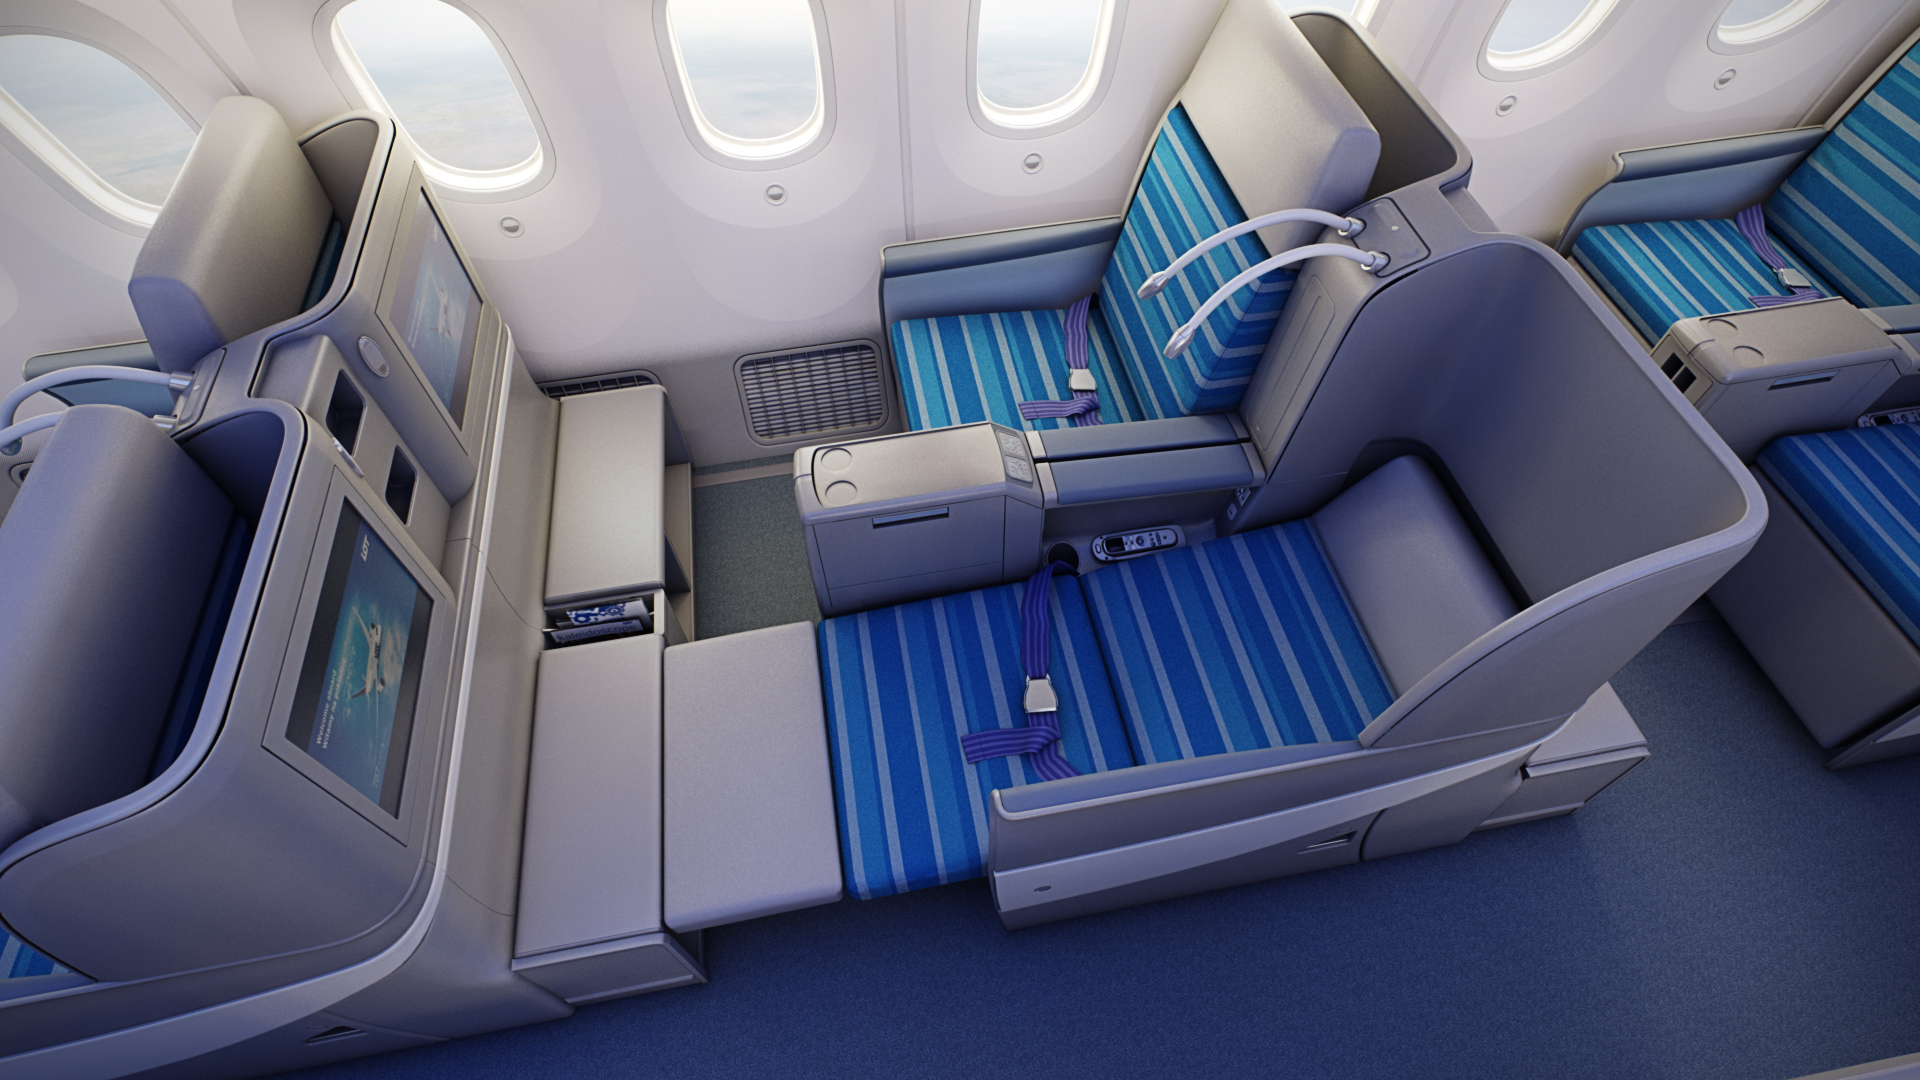 LOT Business Class around the world ticket ANA